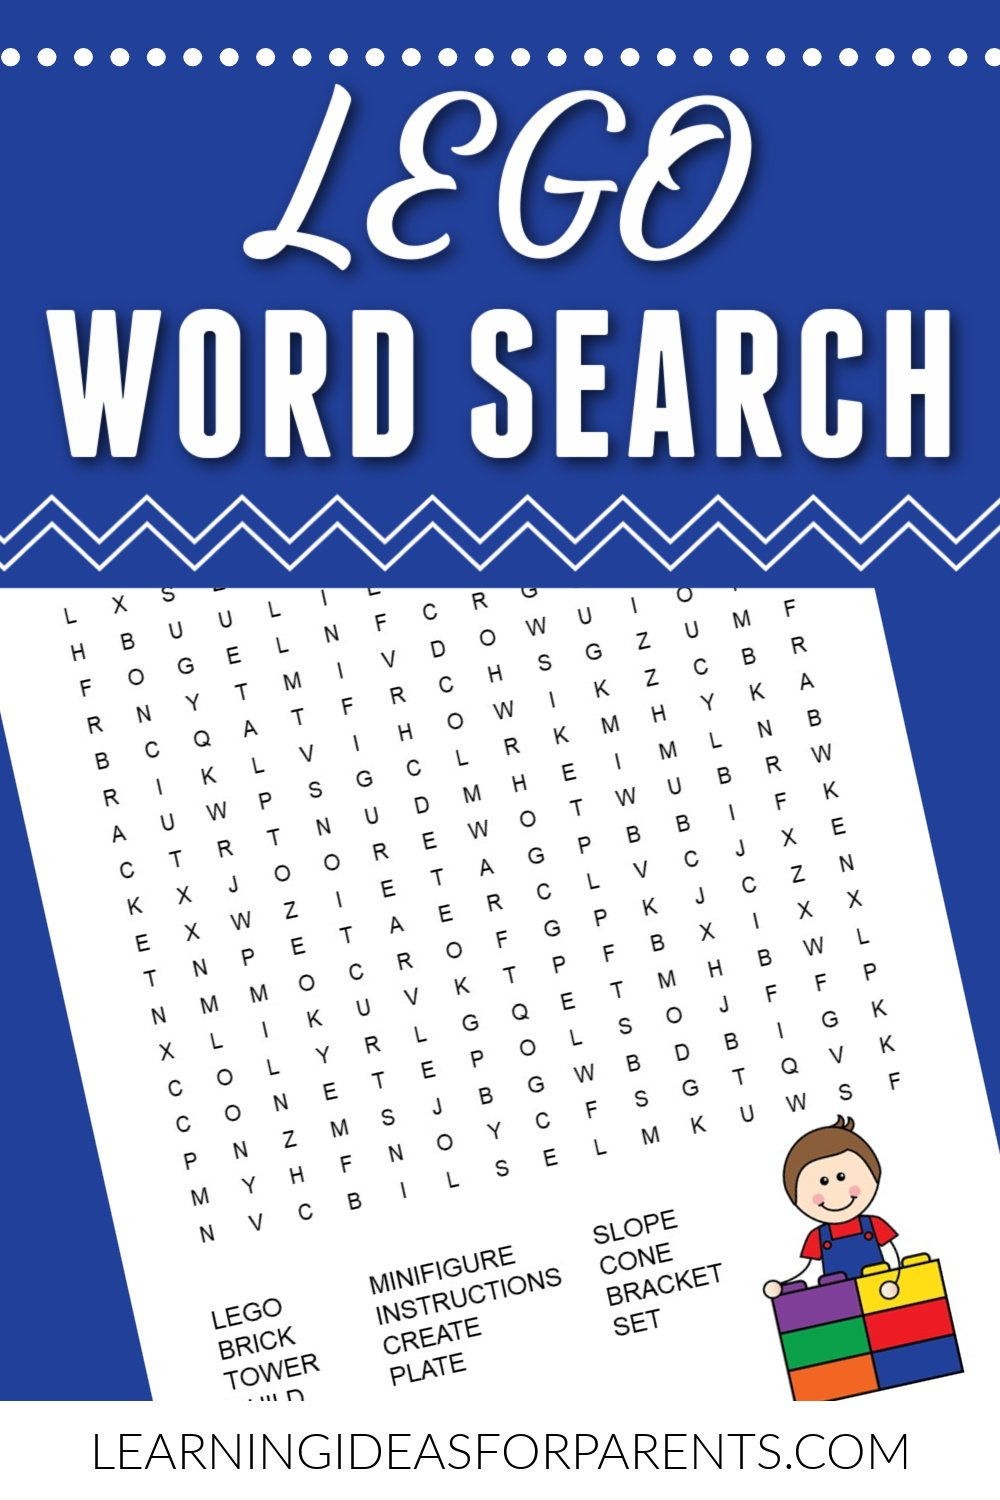 Free printable LEGO word search for kids.